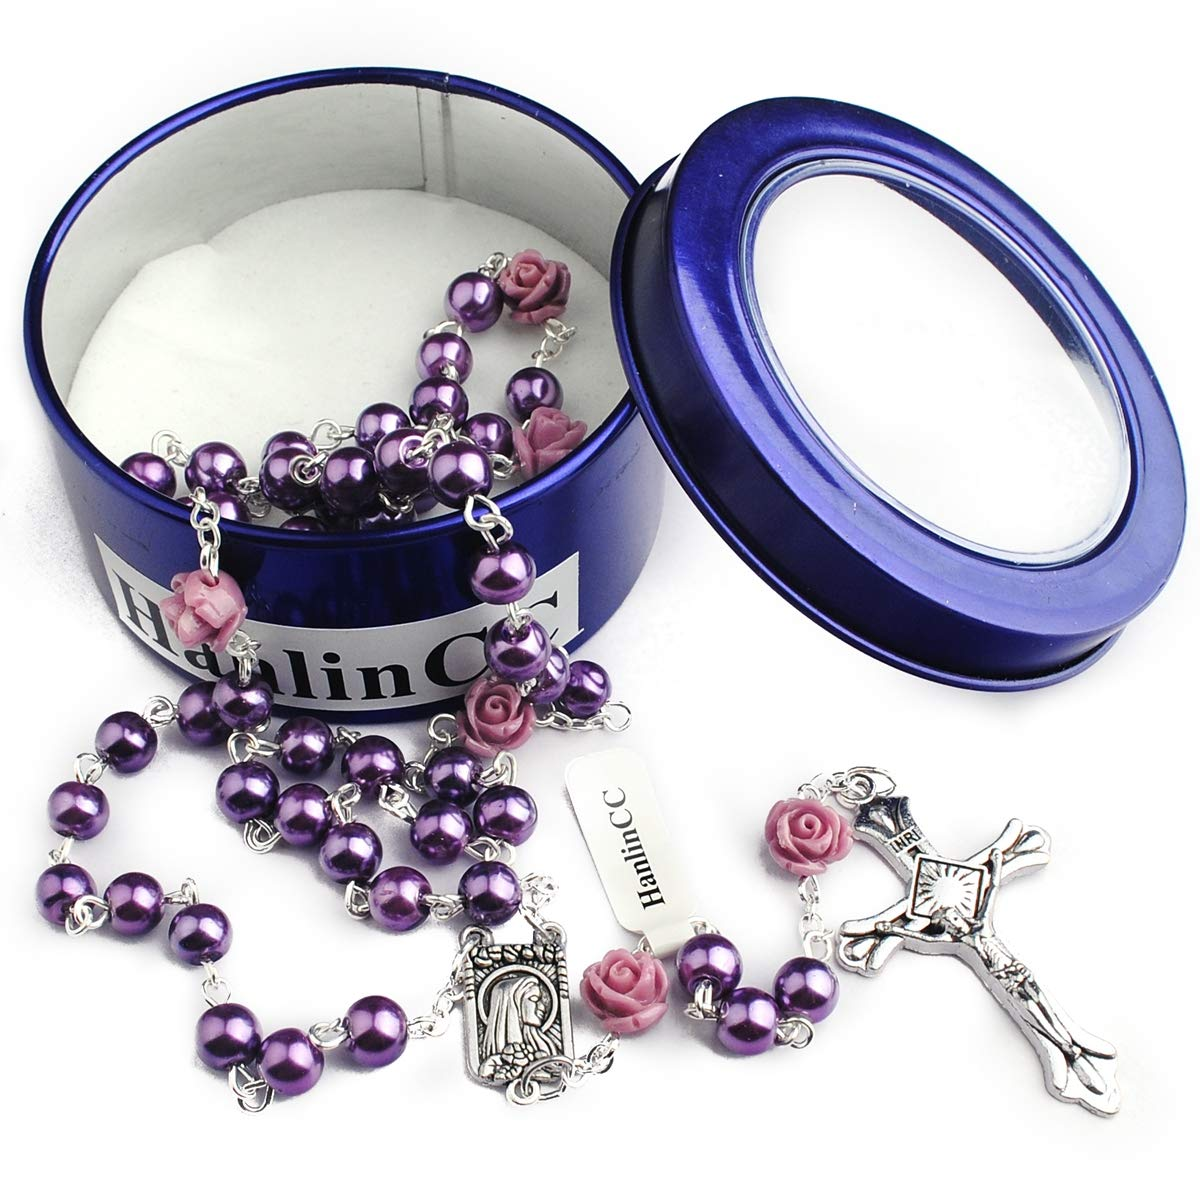 Hedi 6mm Purple Color Pearl Beads Rosary with 6pcs Our Rose Our Facther Beads